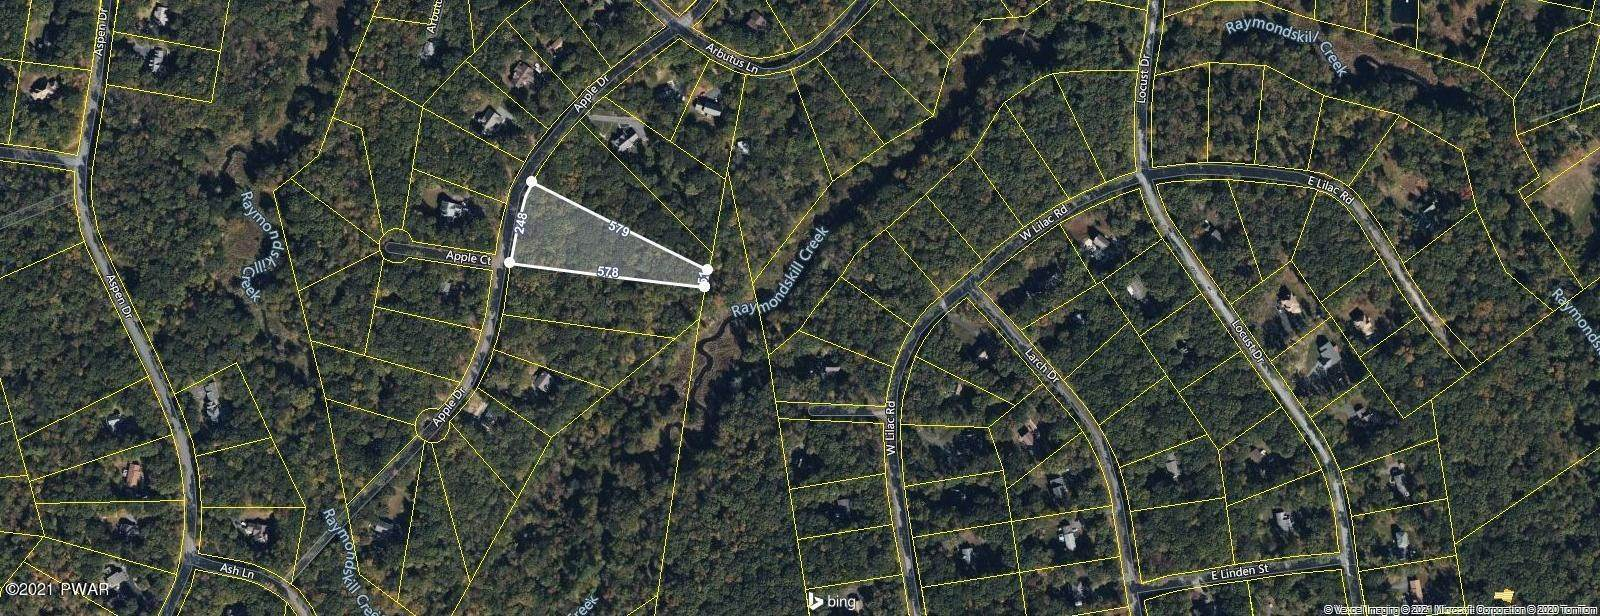 Land for Sale at 160 Apple Dr Milford, Pennsylvania 18337 United States